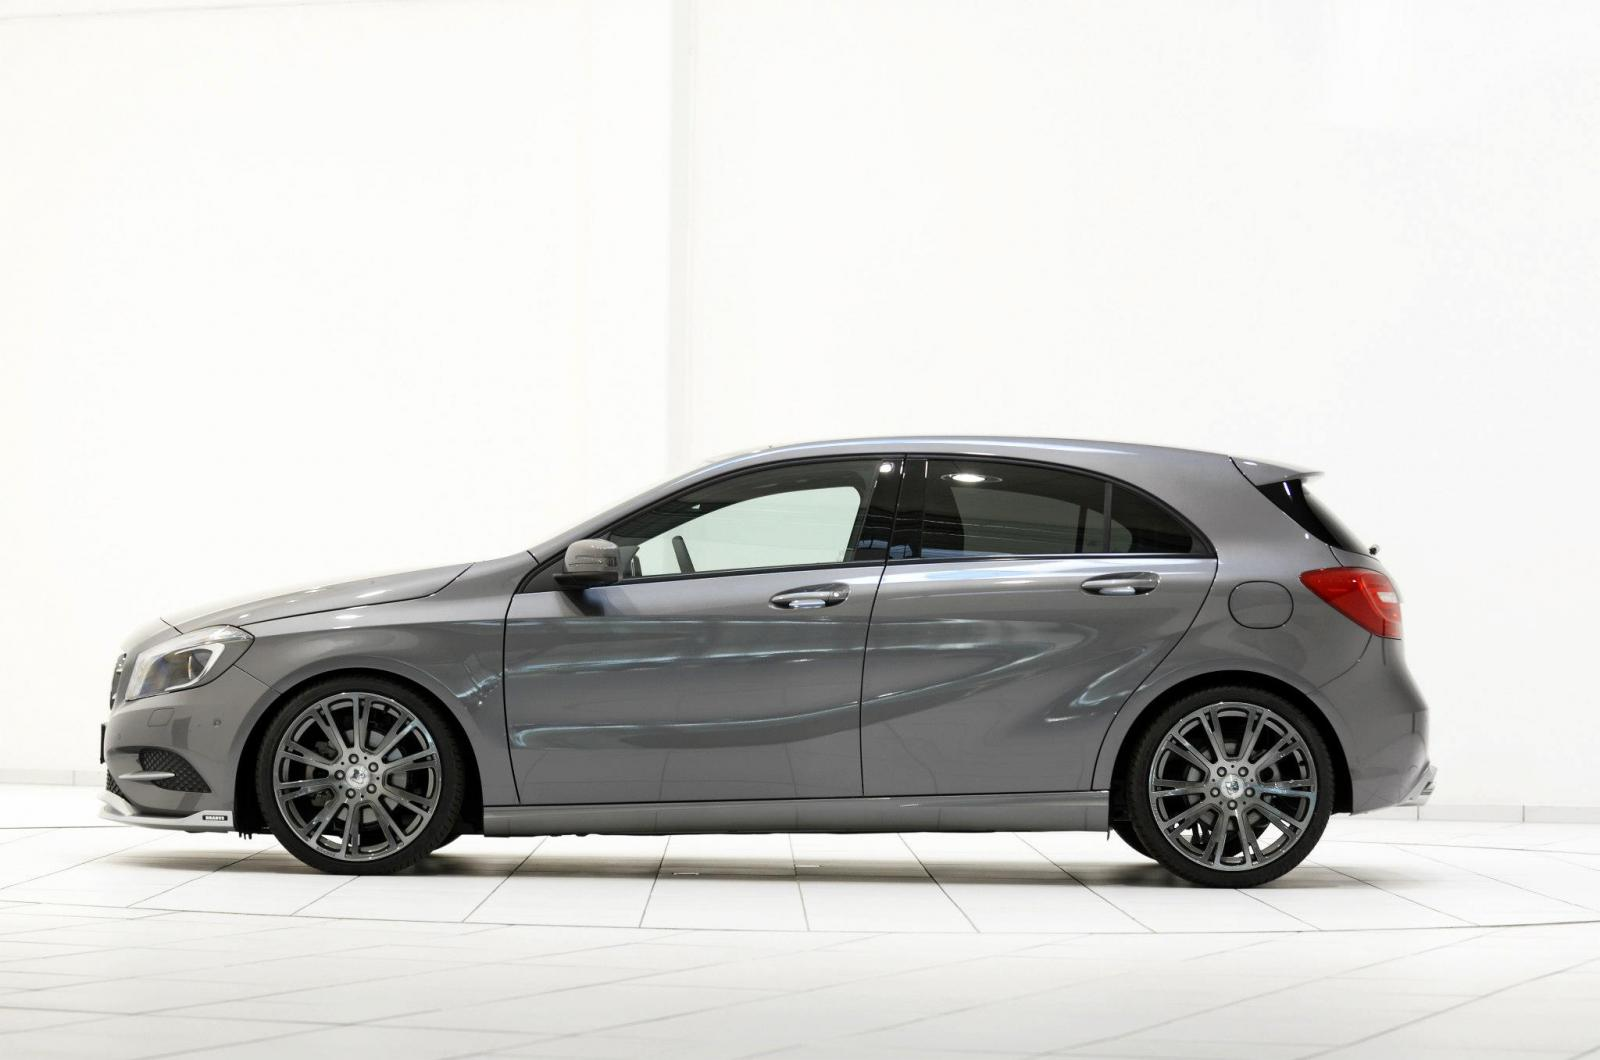 mercedes a200 cdi gets more power from brabus autoevolution. Black Bedroom Furniture Sets. Home Design Ideas